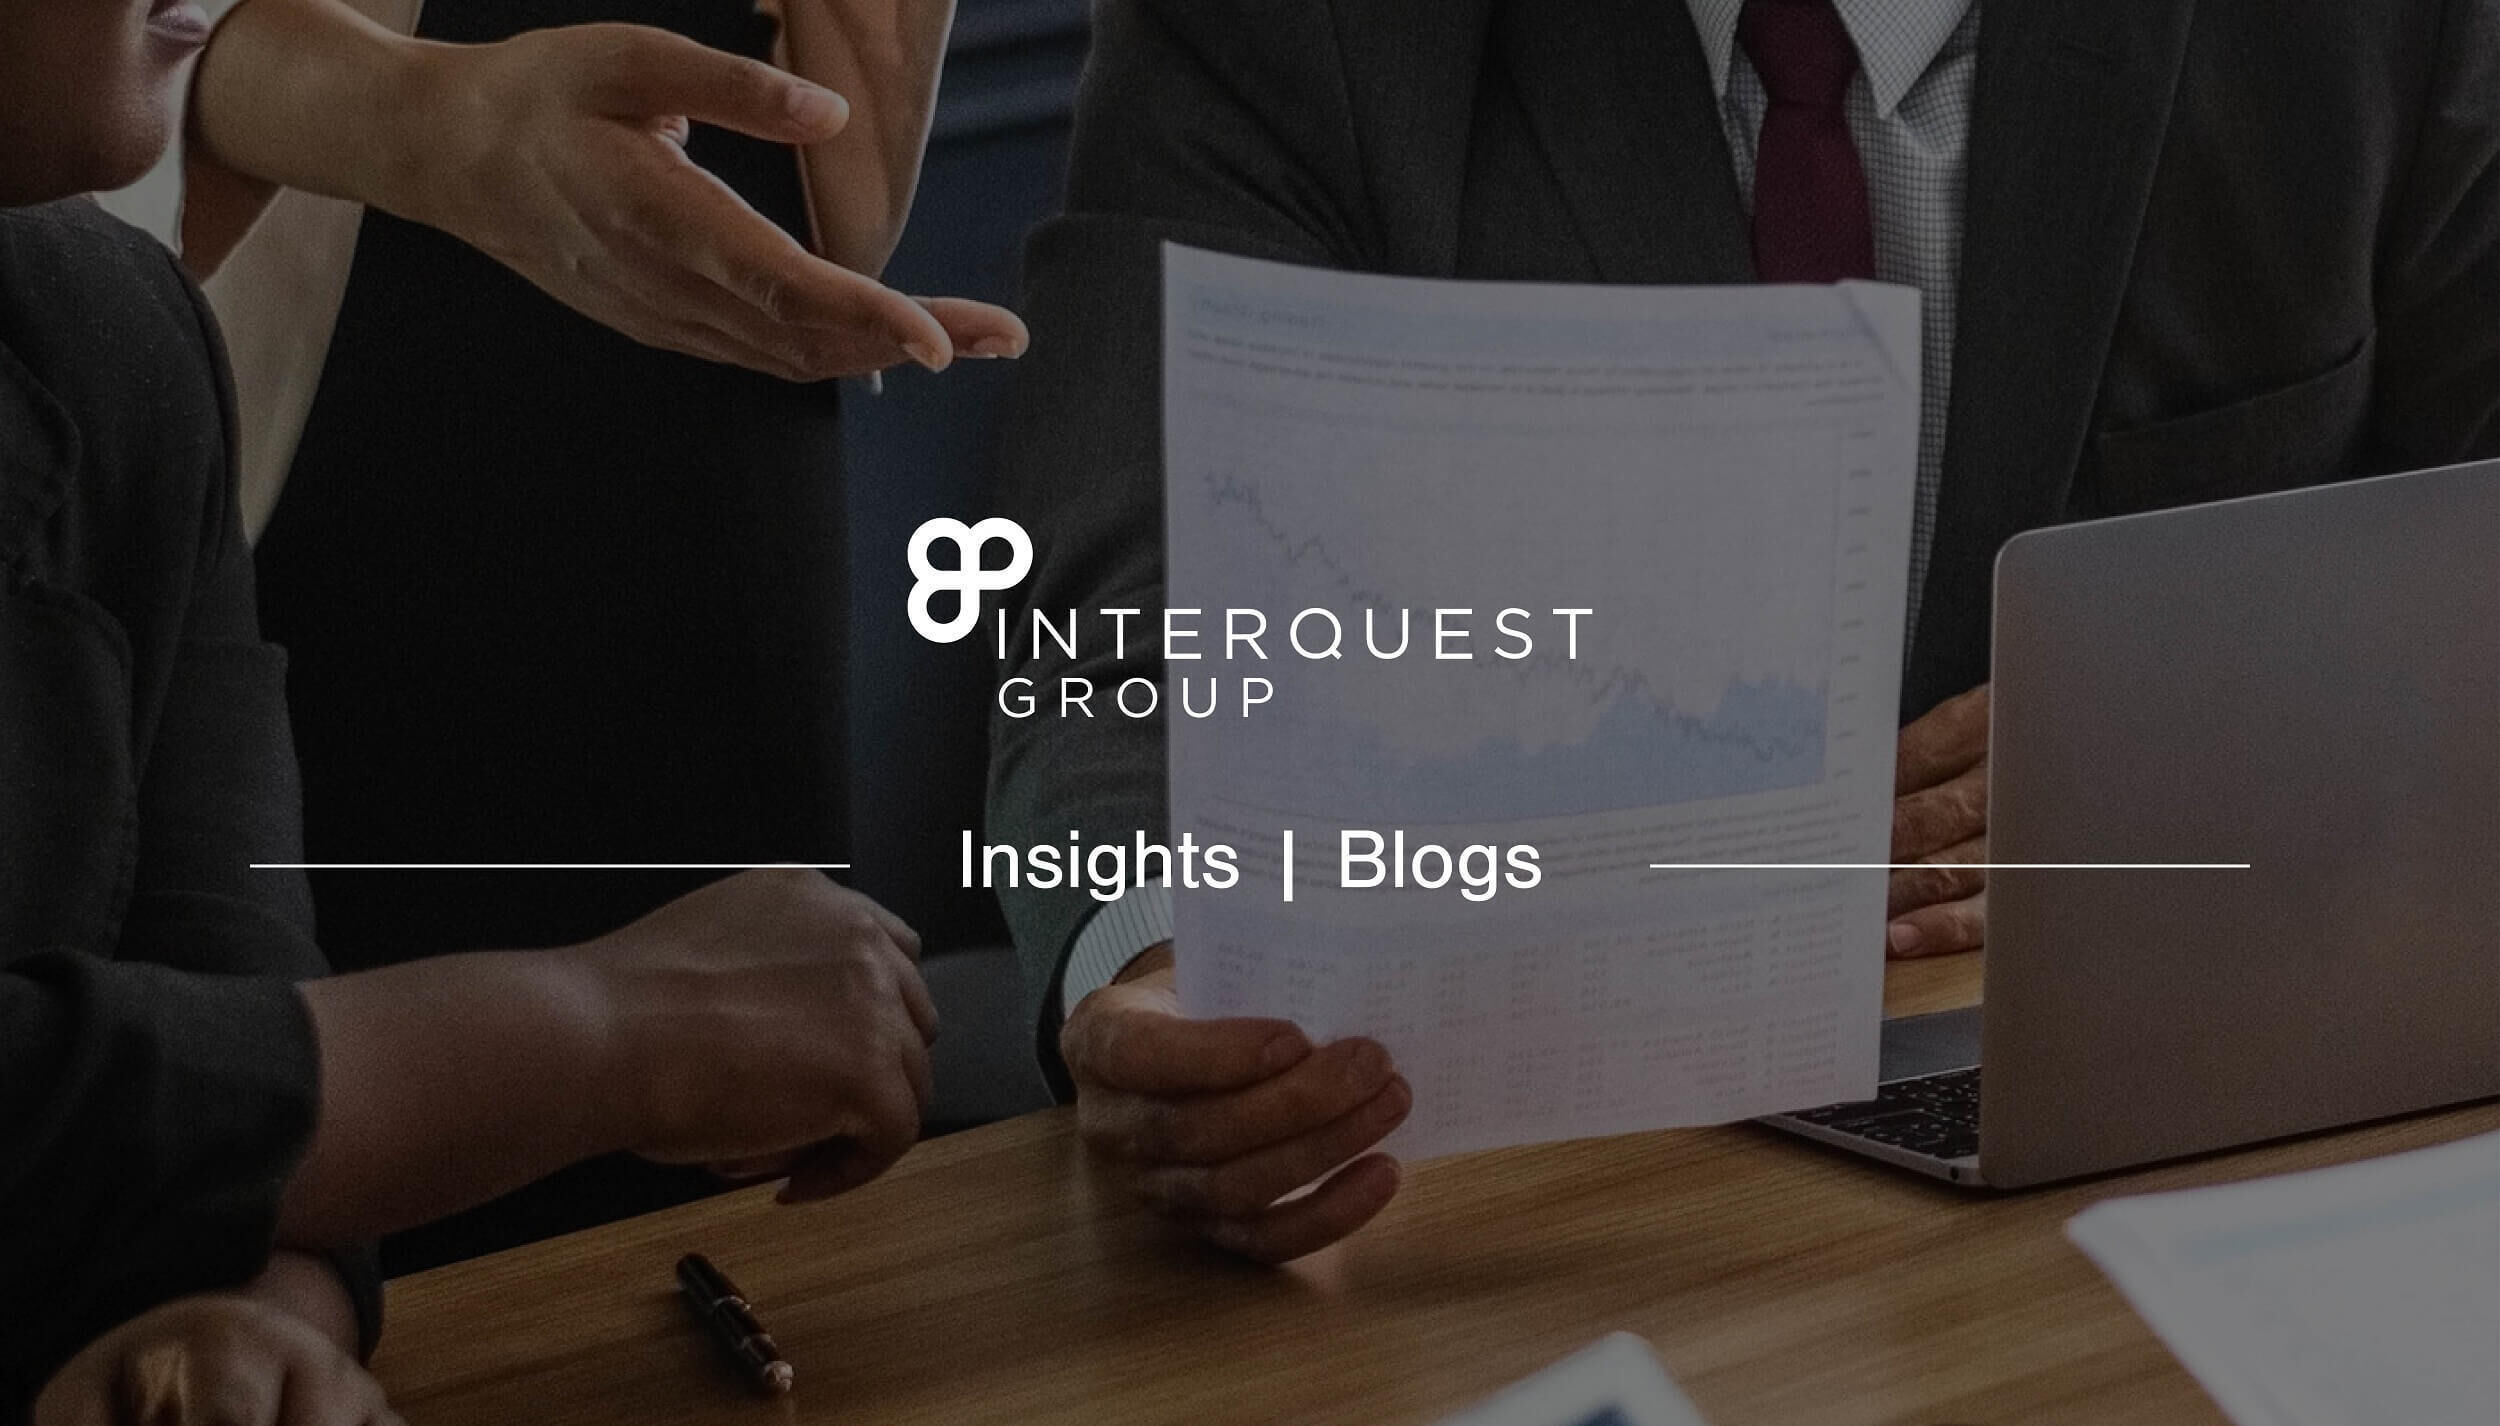 InterQuest Group insights blogs banner background image of people looking at results on a piece of paper